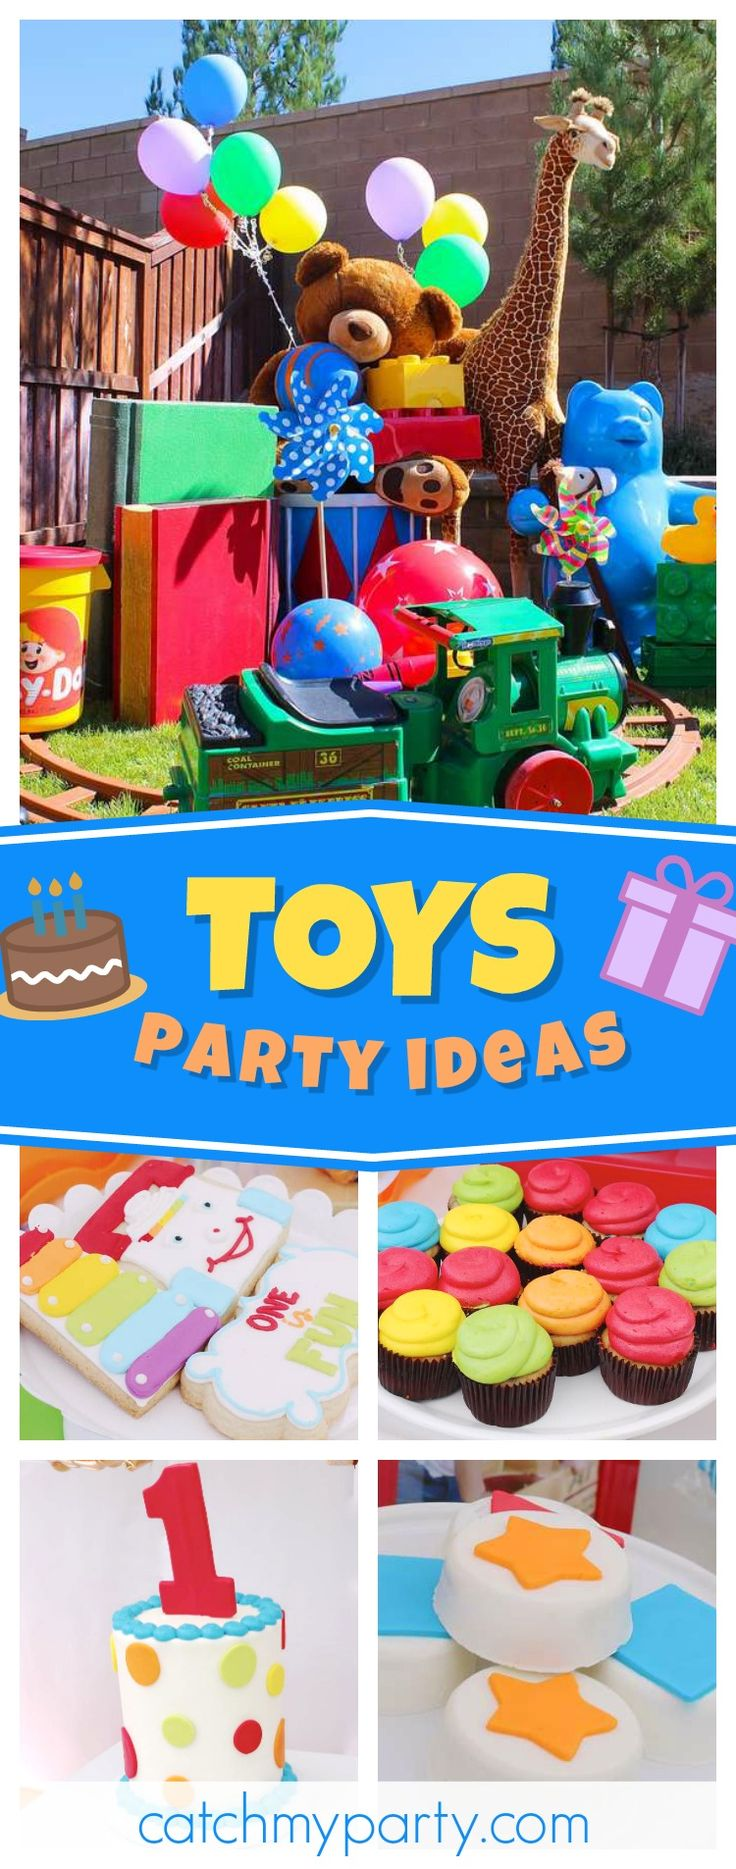 Check Out This Awesome Toyland 1st Birthday Party The Toy Cookies Are So Cool